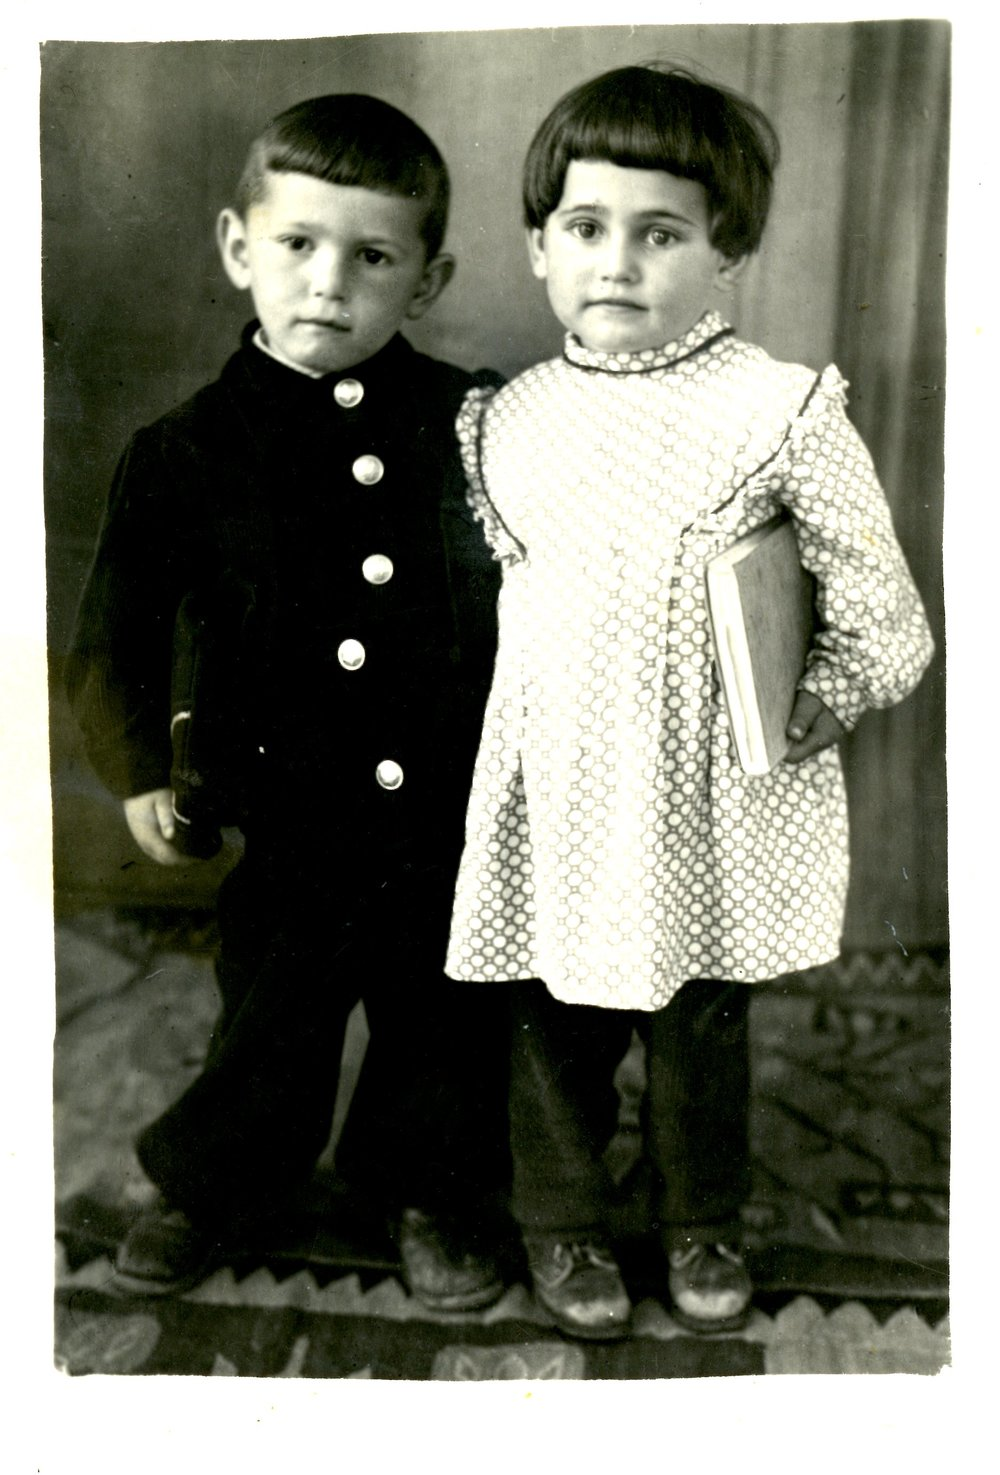 Copy of Khana's half-brother, Chaim, and cousin, Faga, named after Khan's grandparents who were killed in Soroka by the Germans